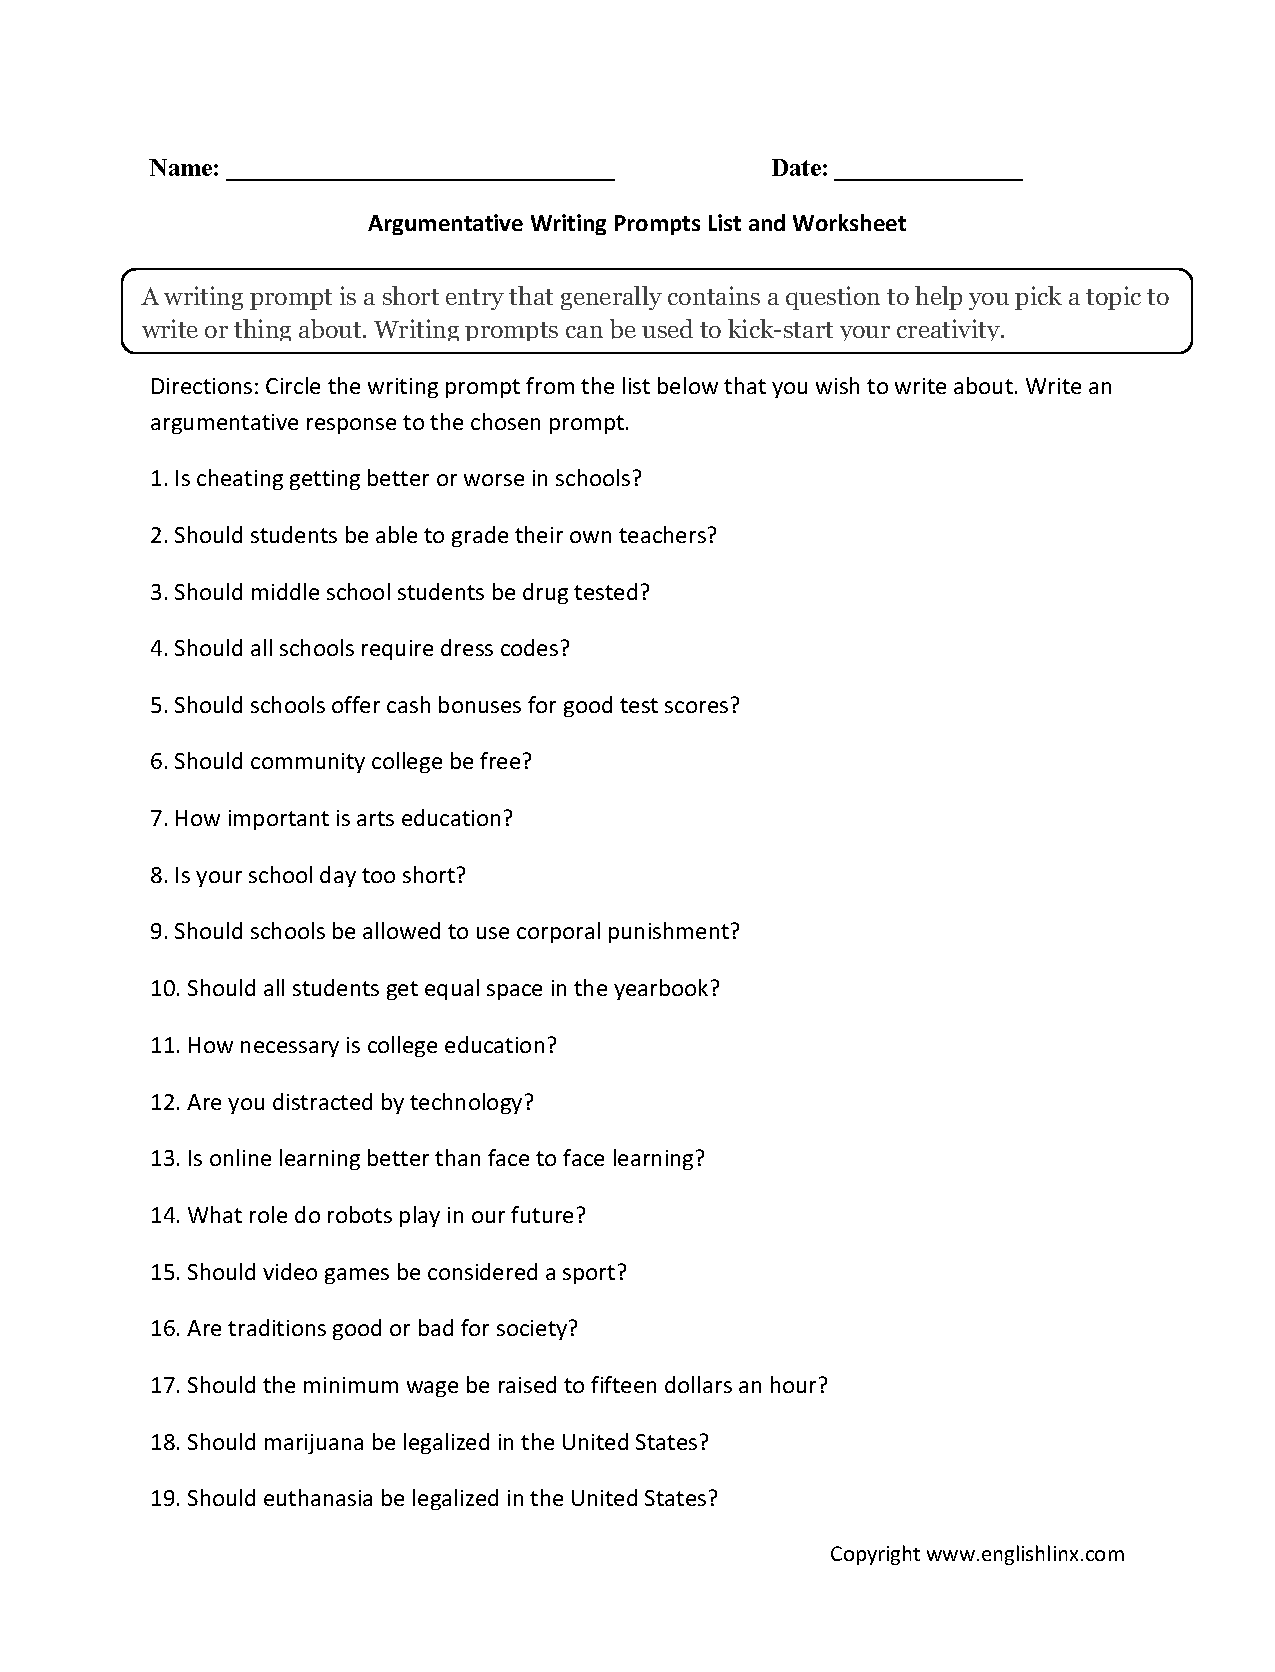 worksheet 8th Grade Writing Worksheets writing prompts worksheets argumentative list worksheets